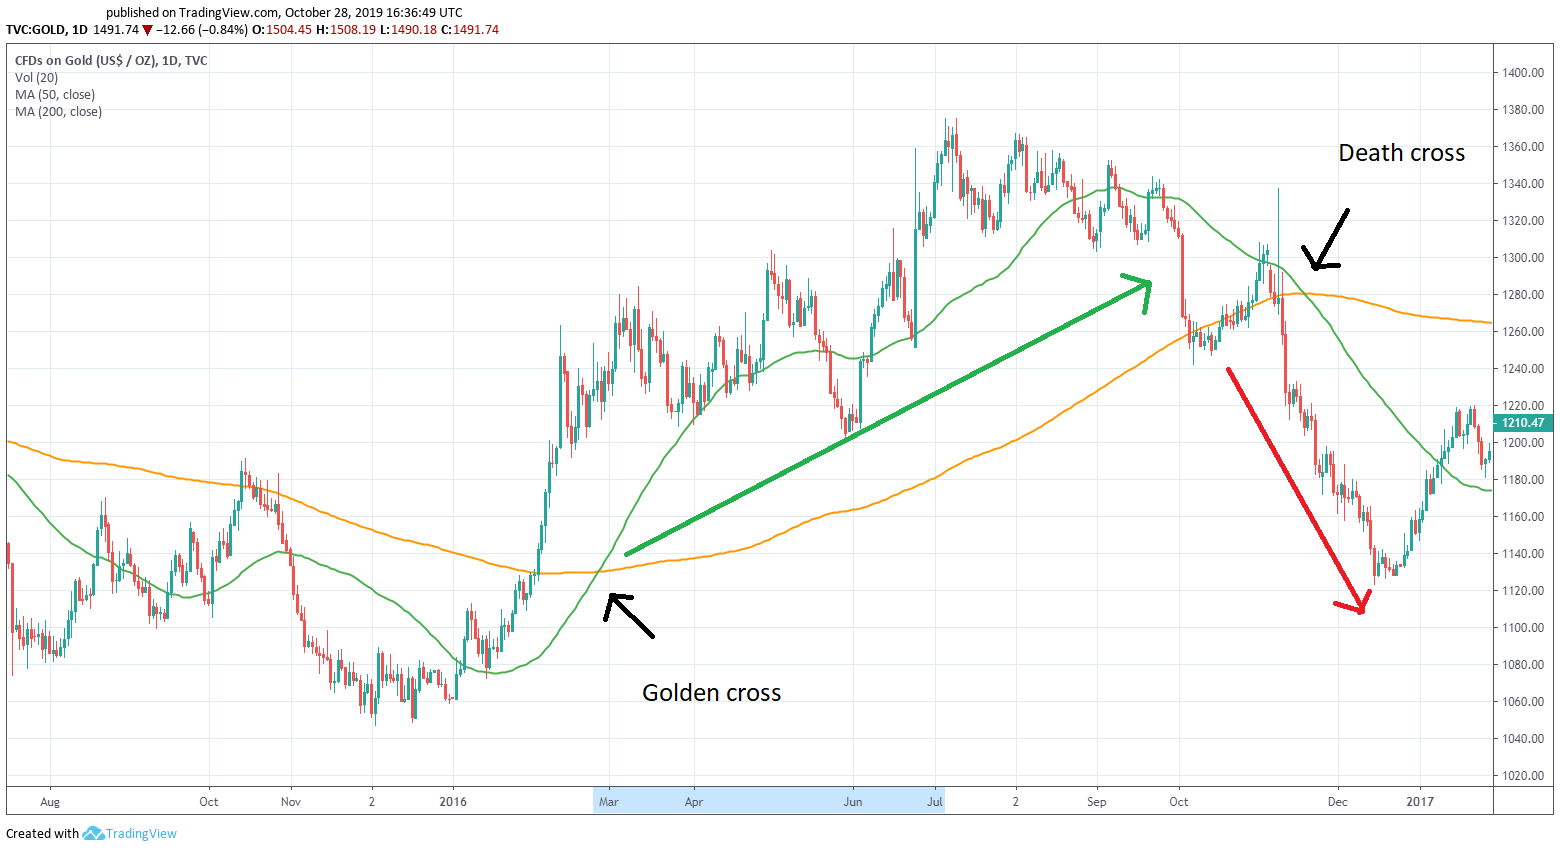 What is a Golden Cross and a Death Cross in trading